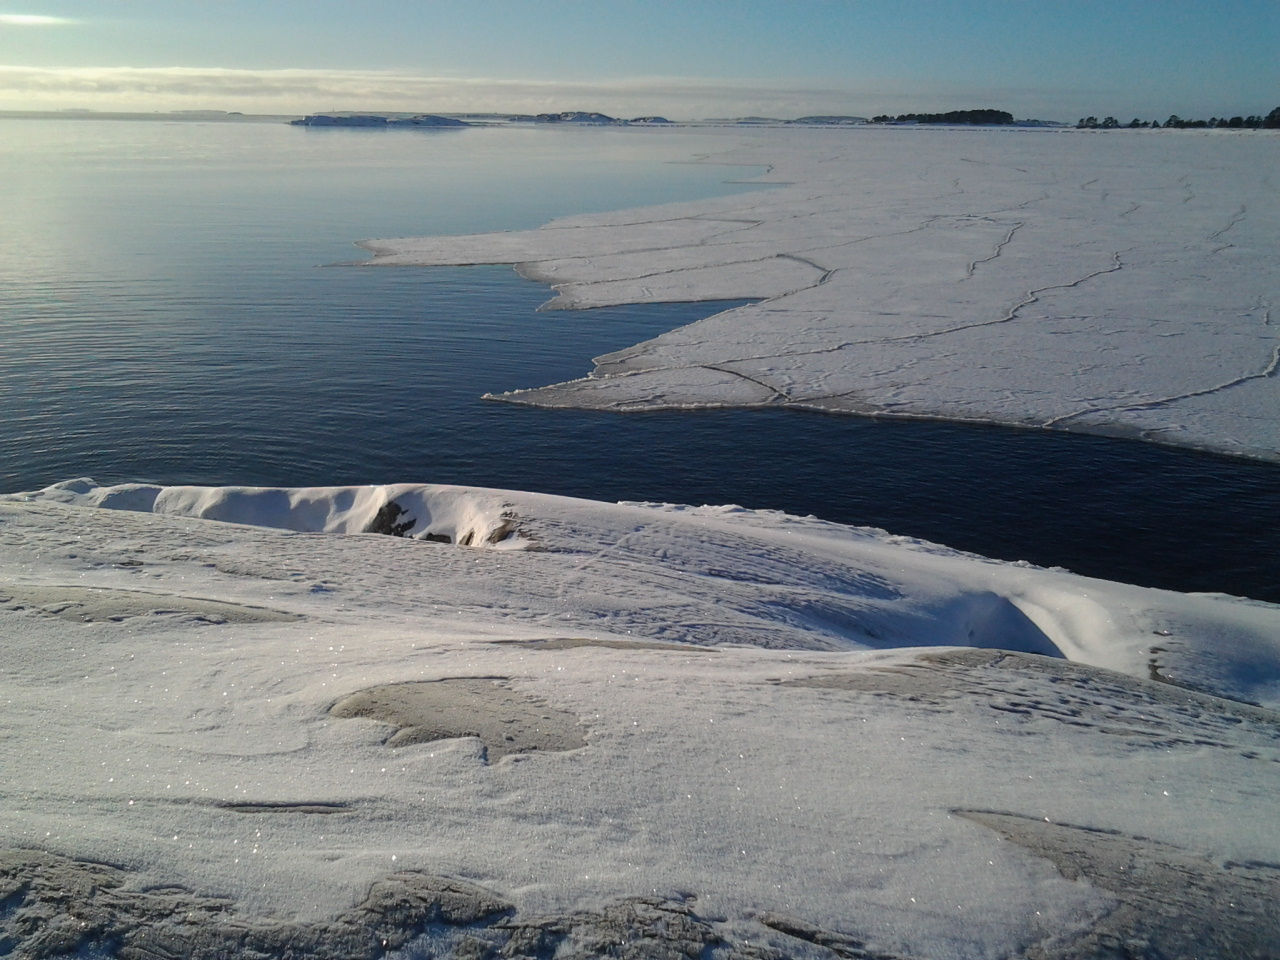 Southern waves and wind from north causes loosely drifting ice